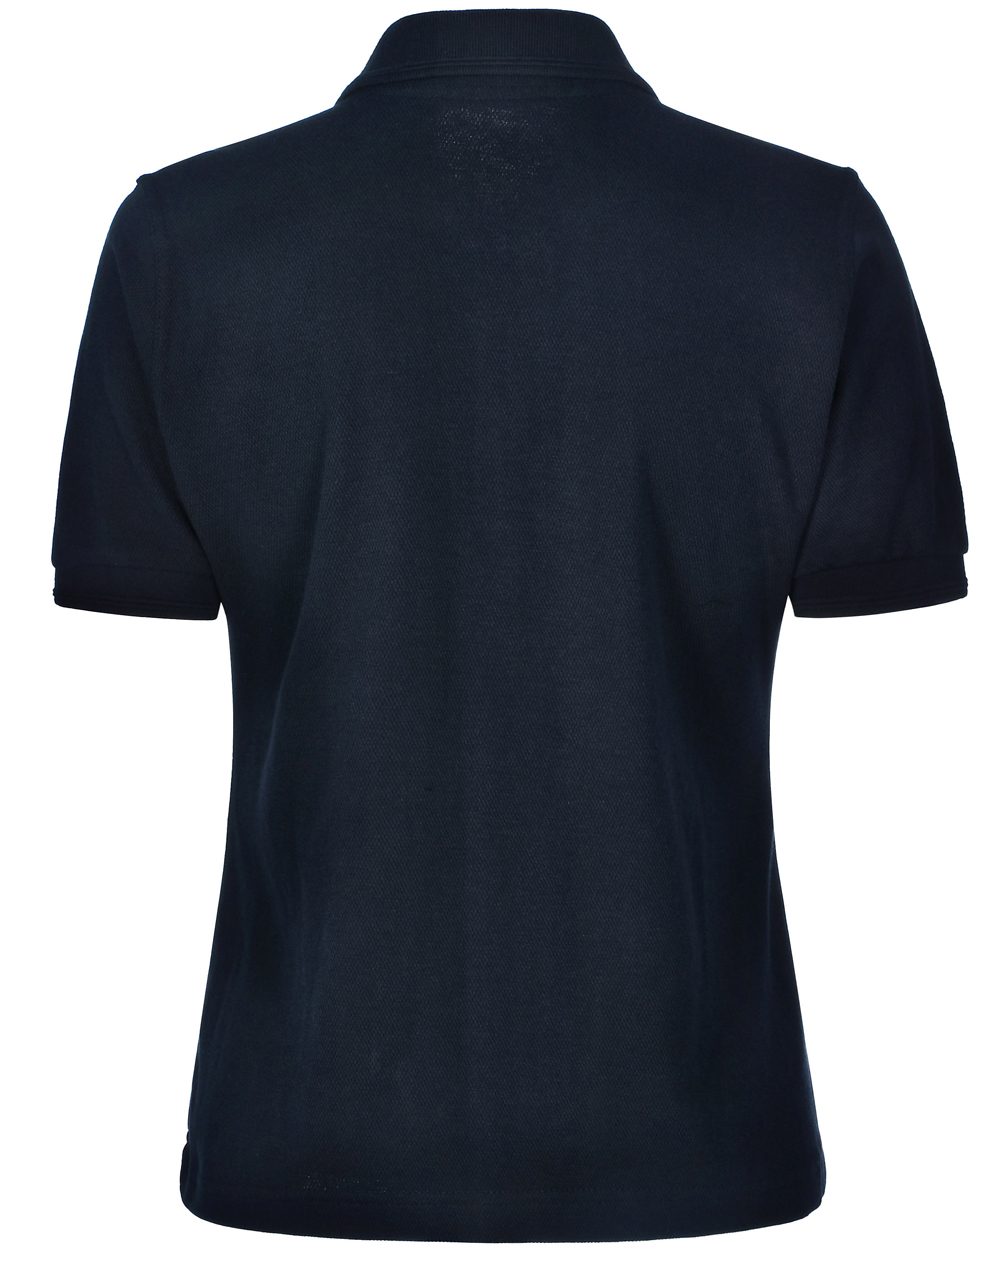 https://s3-ap-southeast-1.amazonaws.com/ws-imgs/POLOSHIRTS/PS26_Navy.White_Back.jpg